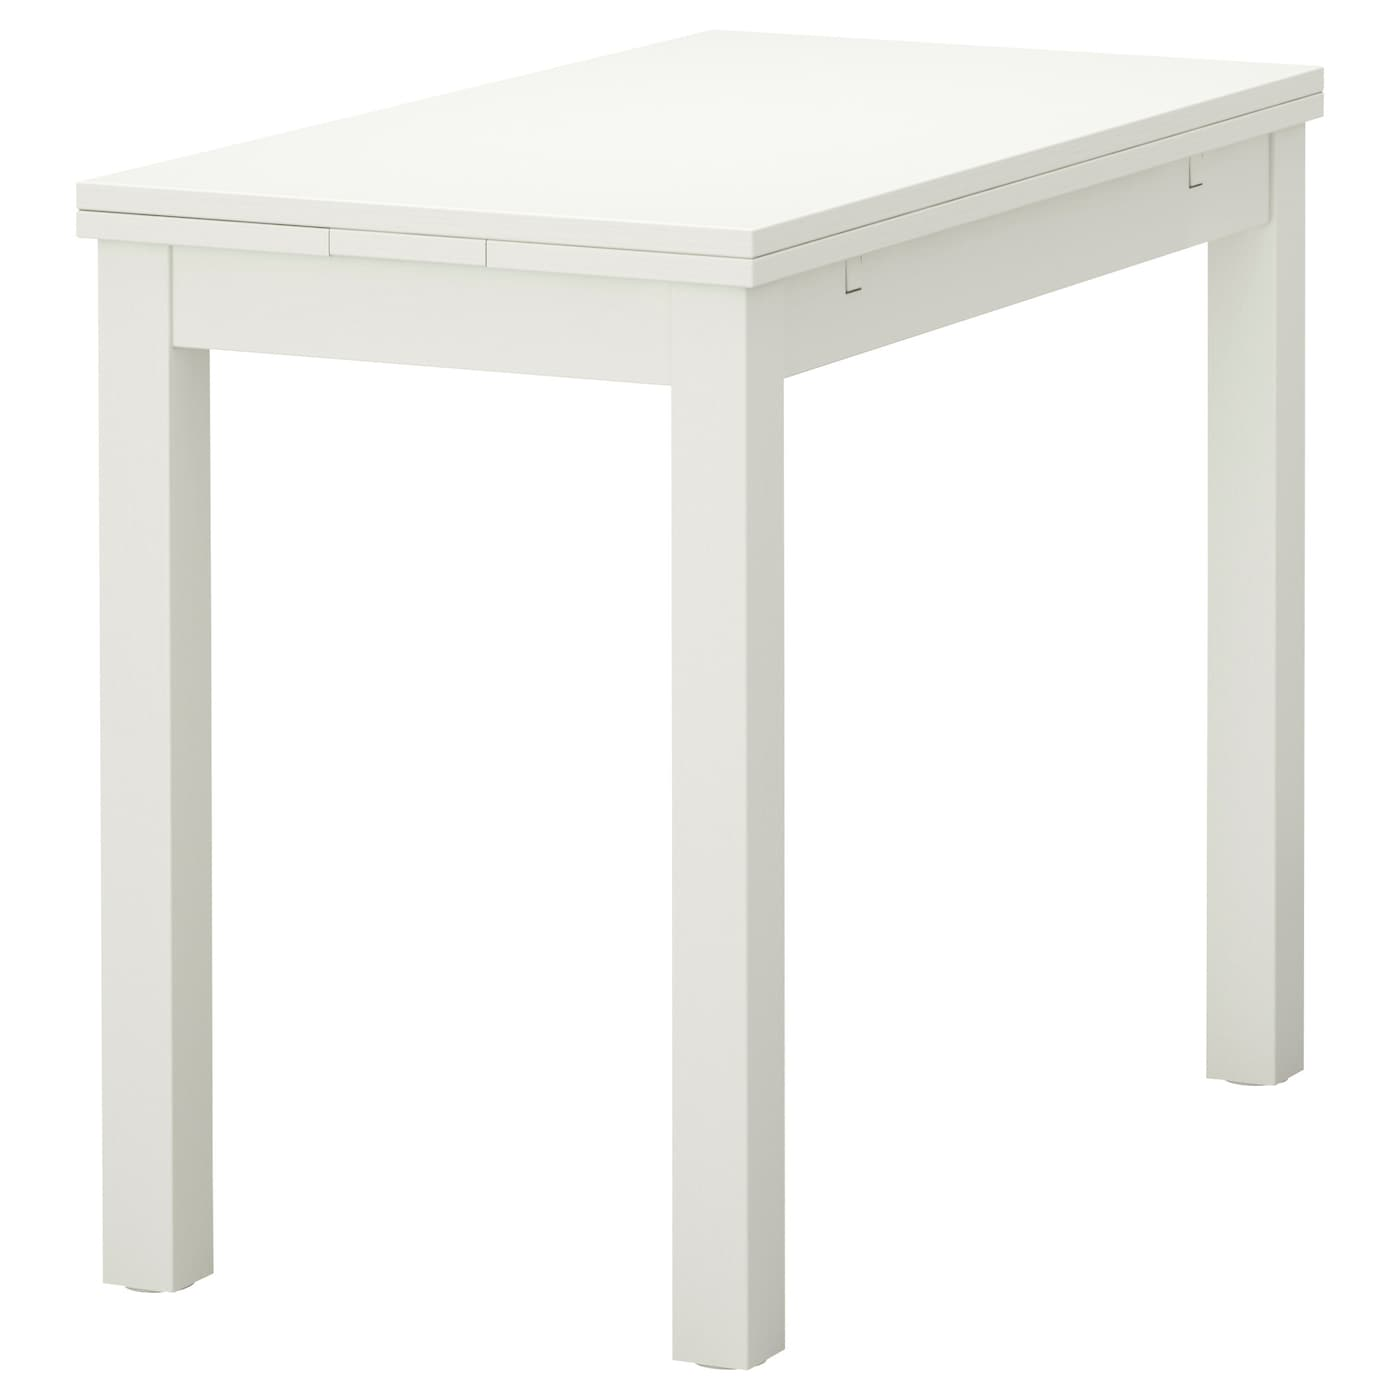 IKEA BJURSTA Extendable Table 2 Pull Out Leaves Included. Ideal As An  #6E6E5D 2000 2000 Ikea Tavoli Per Ufficio